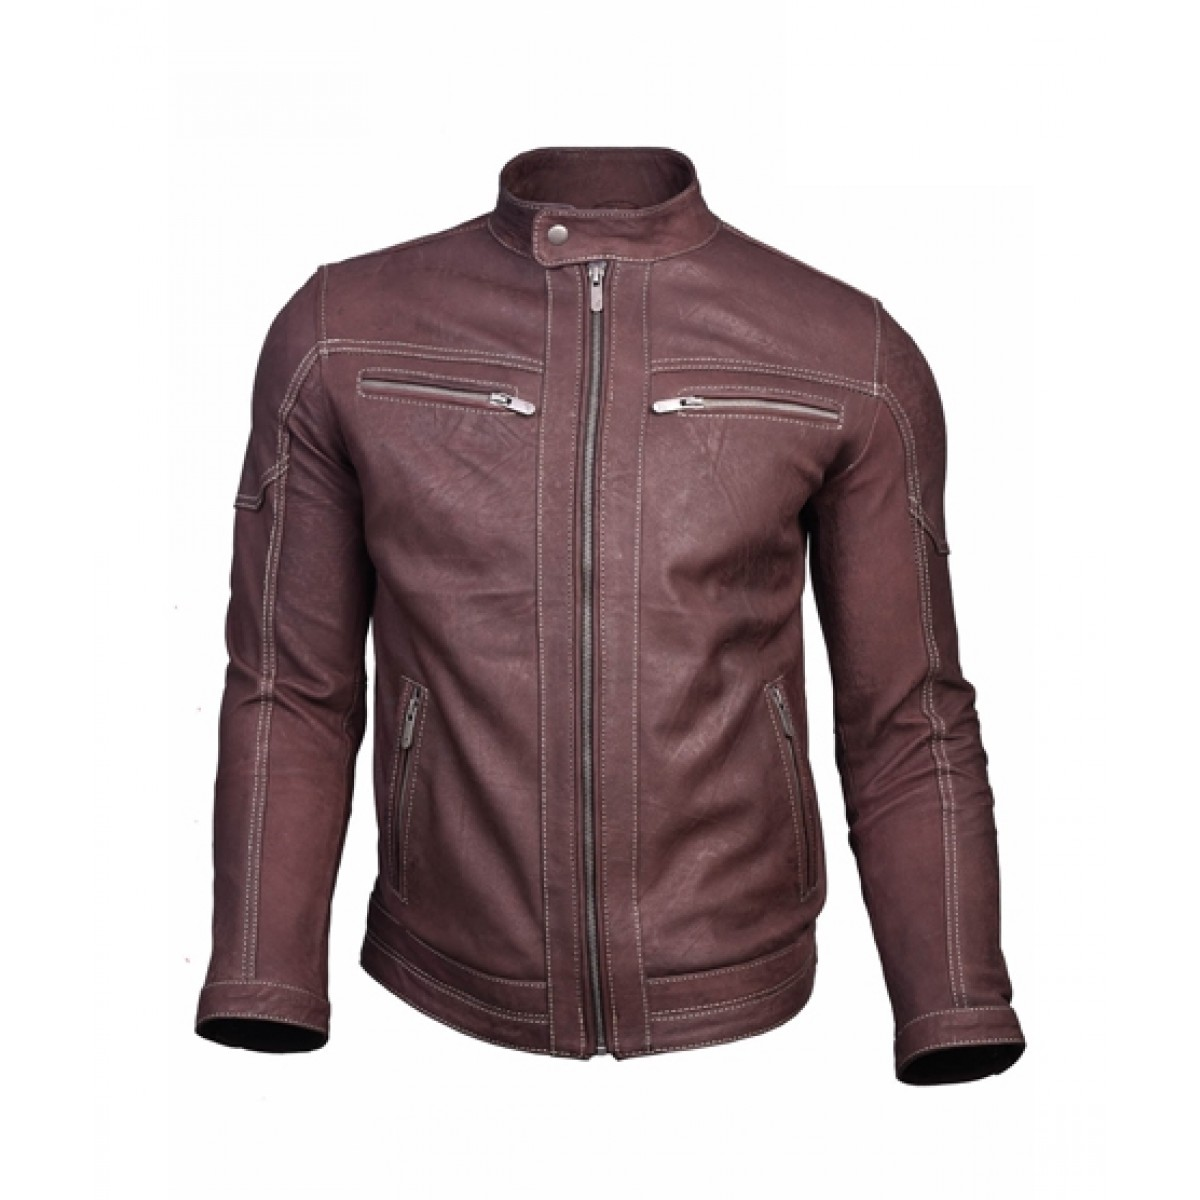 f23fa94a52e3 Rubian Store Leather Jacket For Men Price in Pakistan | Buy Rubian Store Leather  Jacket For Men - Brown (0556) | iShopping.pk